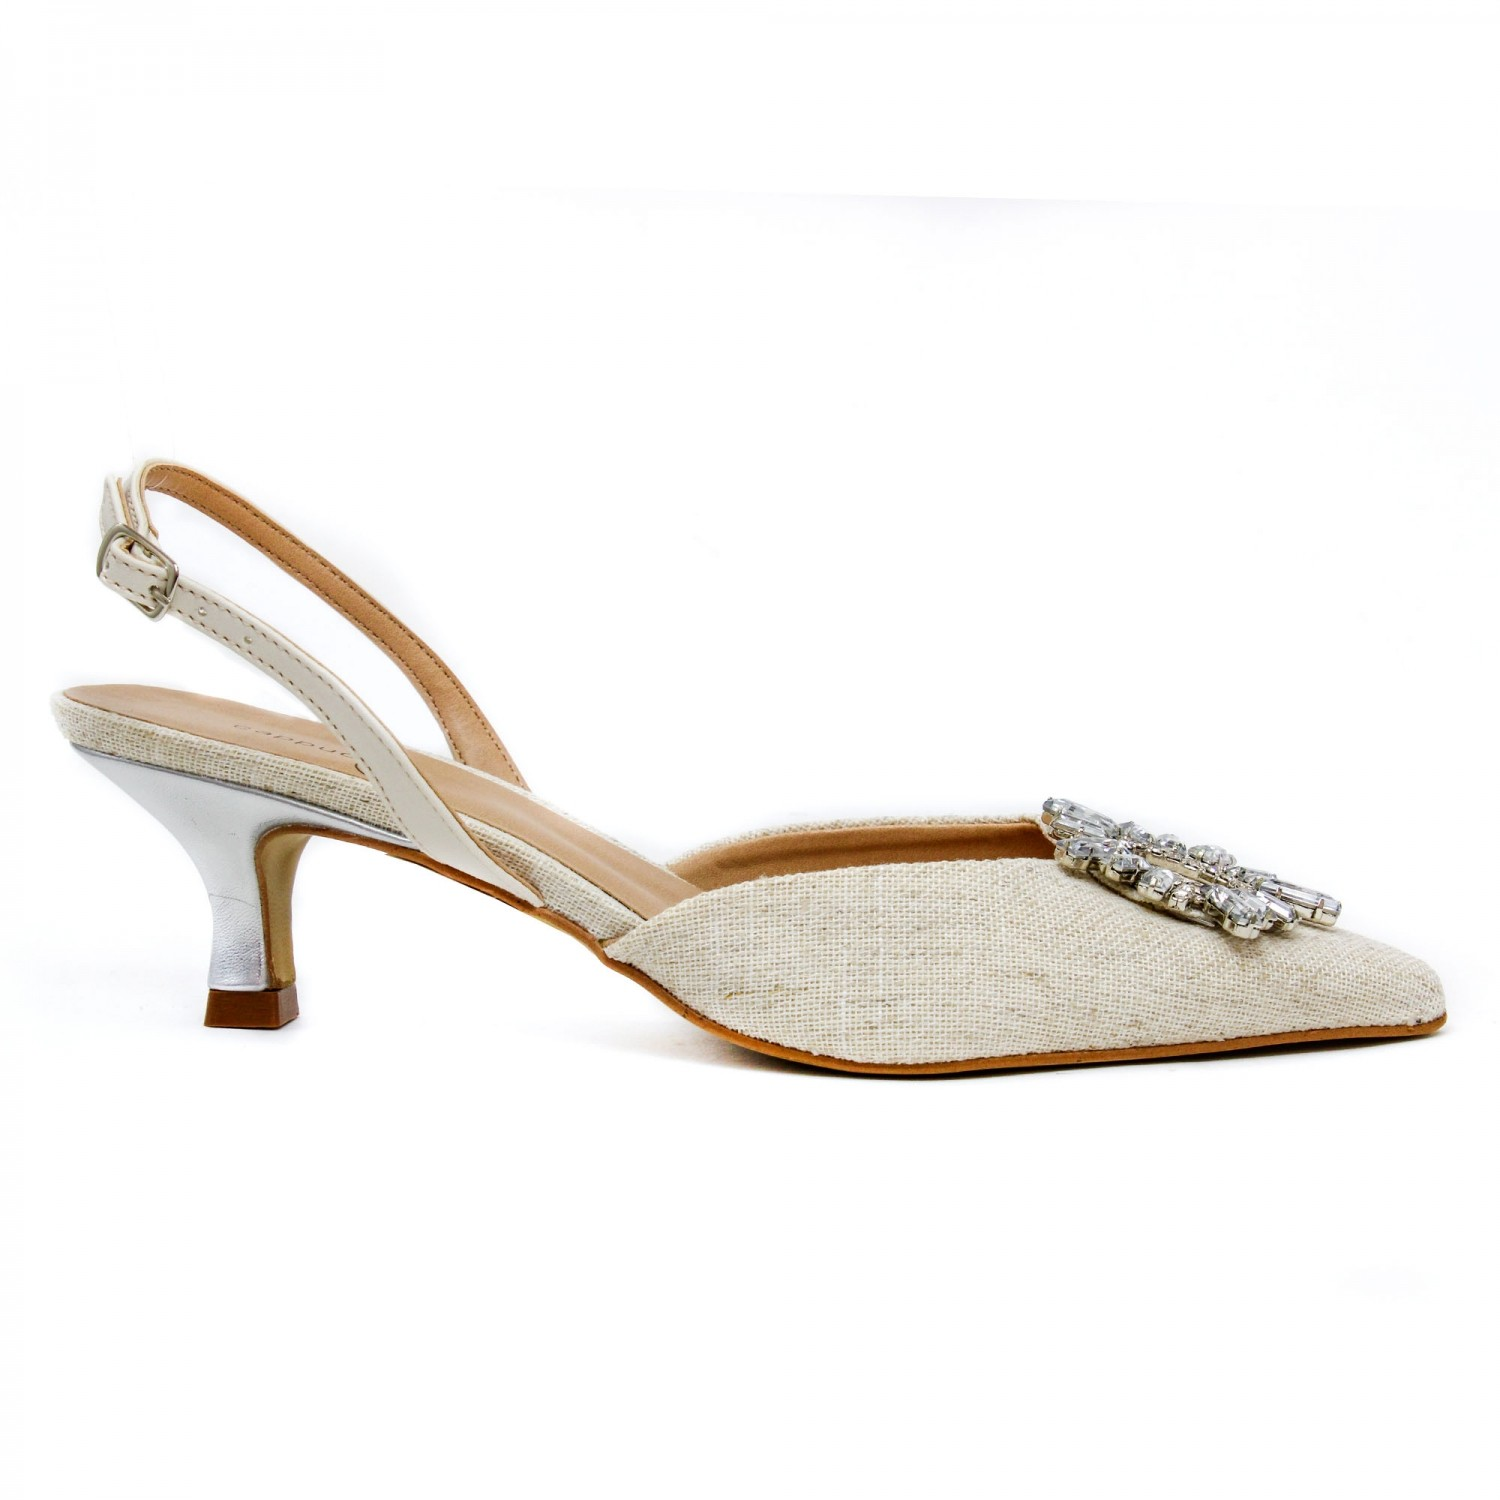 SCARPIN CHANEL COM BROCHE DE PEDRAS OFF WHITE